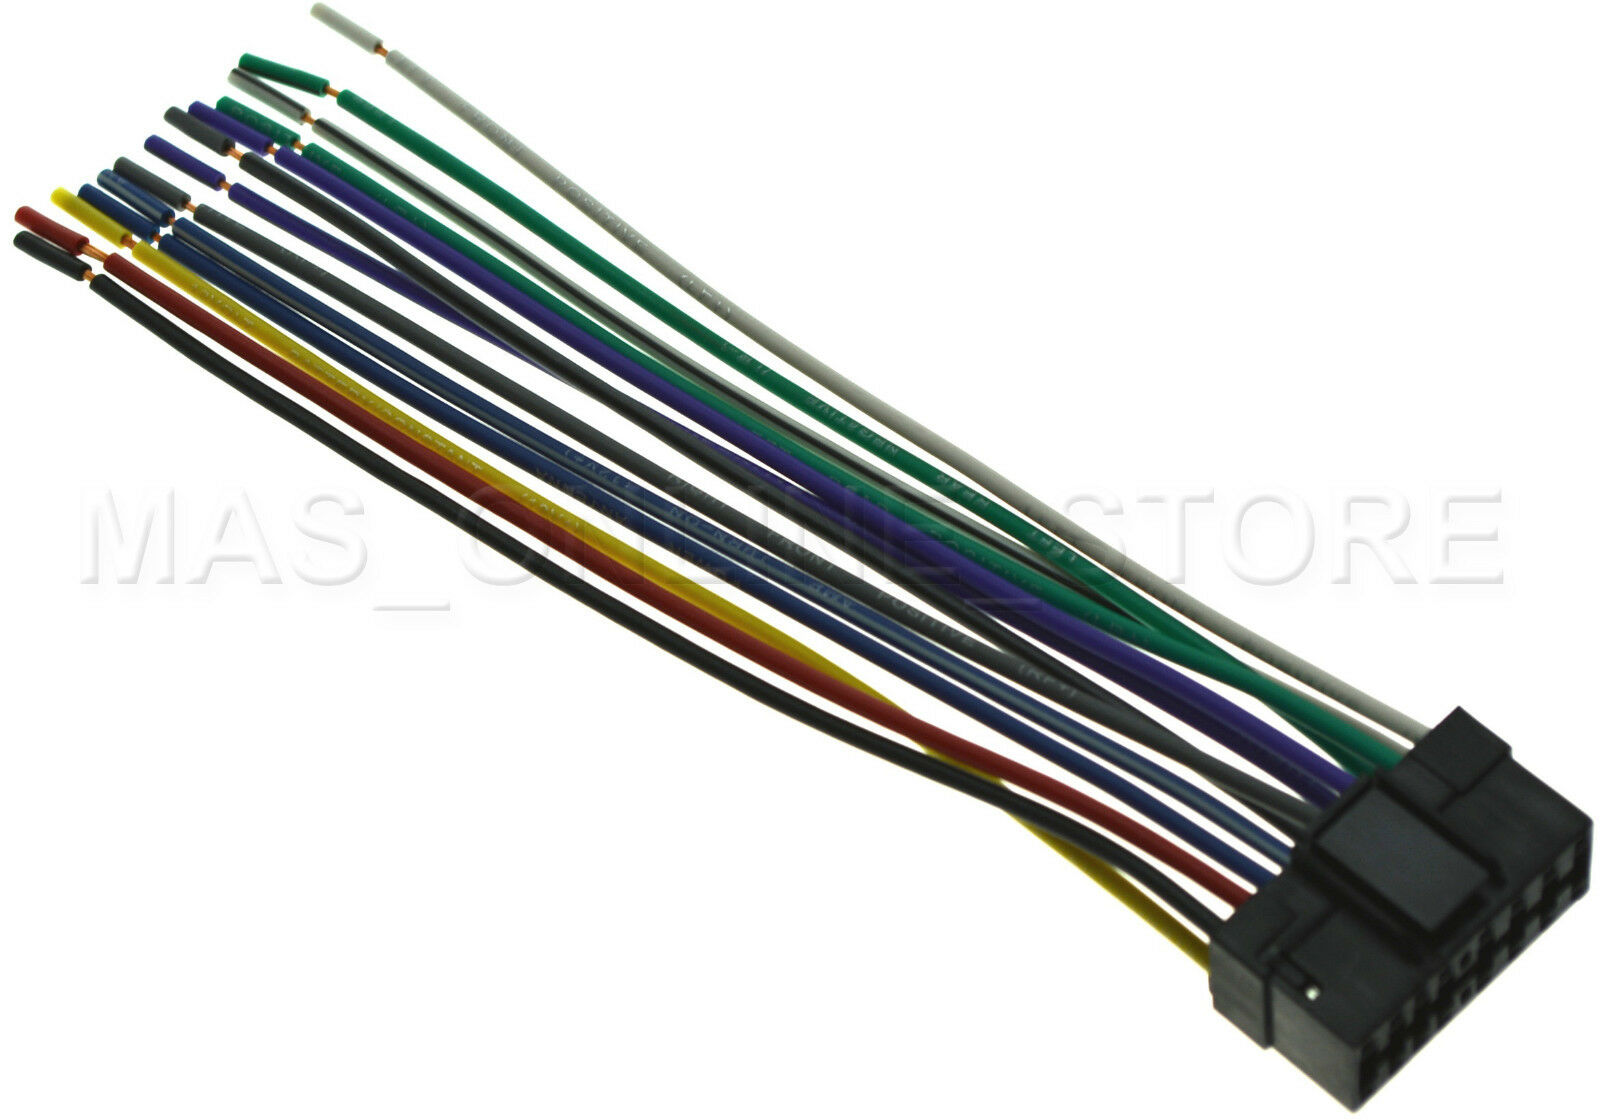 Wire Harness For Sony Cdx Gt07 Cdxgt07 Gt09 Cdxgt09 Pay Today Wiring Ships 1 Of 5free Shipping